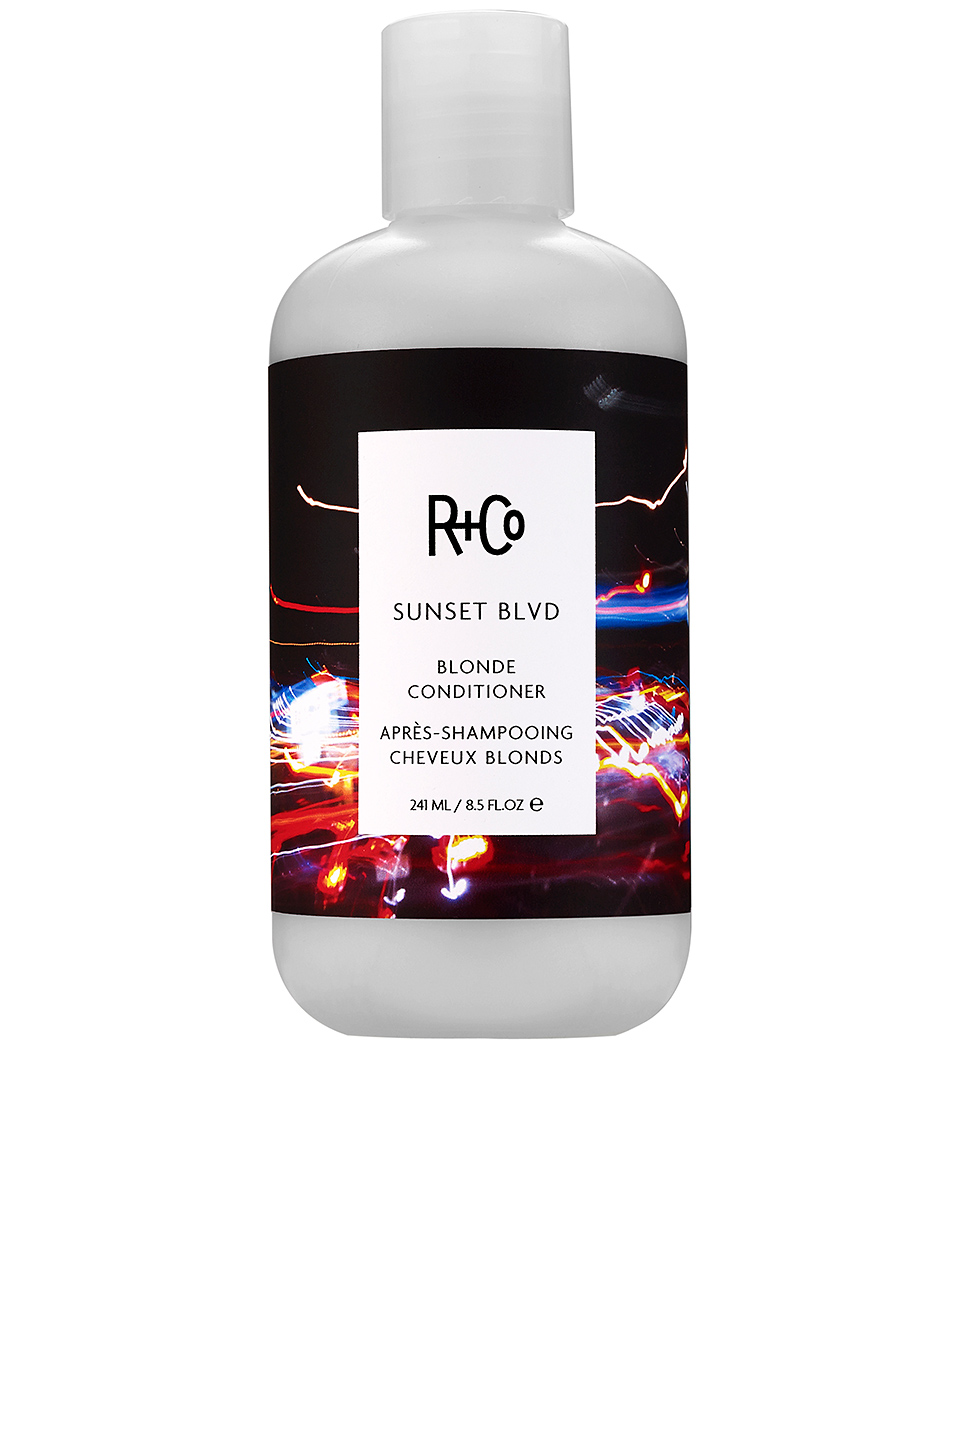 R+Co Sunset Blvd Blonde Conditioner in All